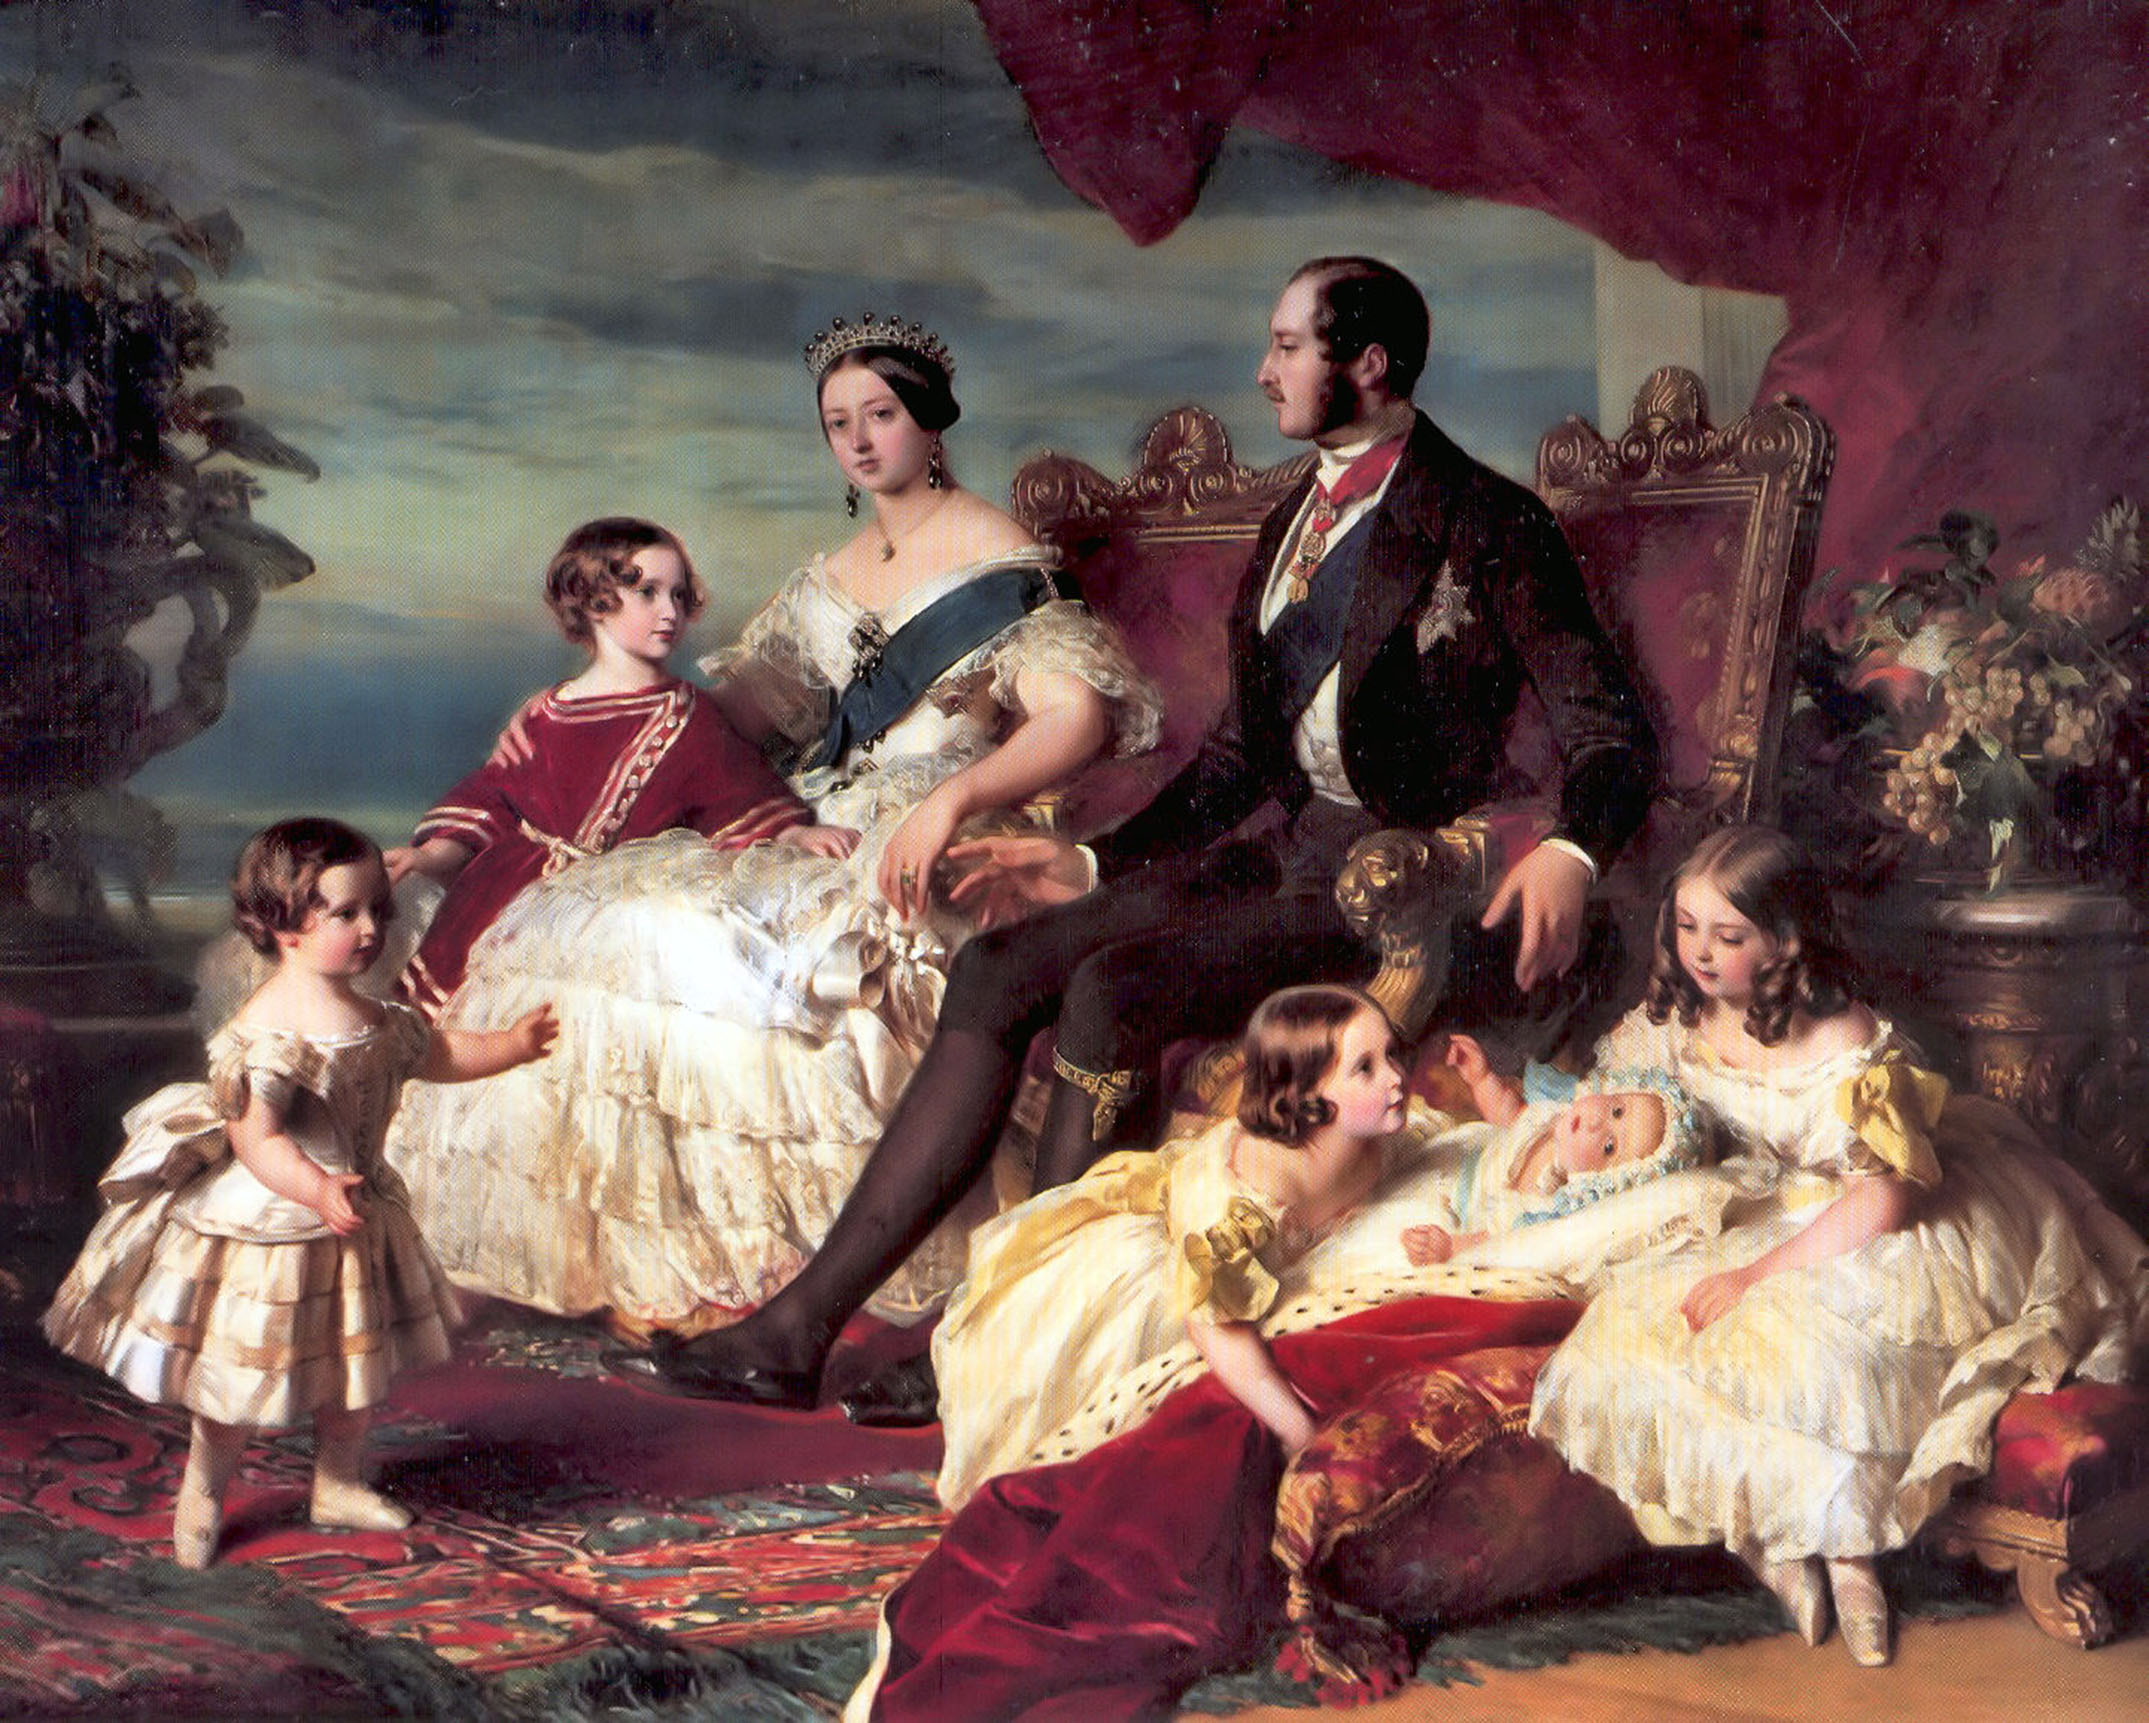 Queen Victoria and Prince Albert surrounded by some of their children at Windsor Castle